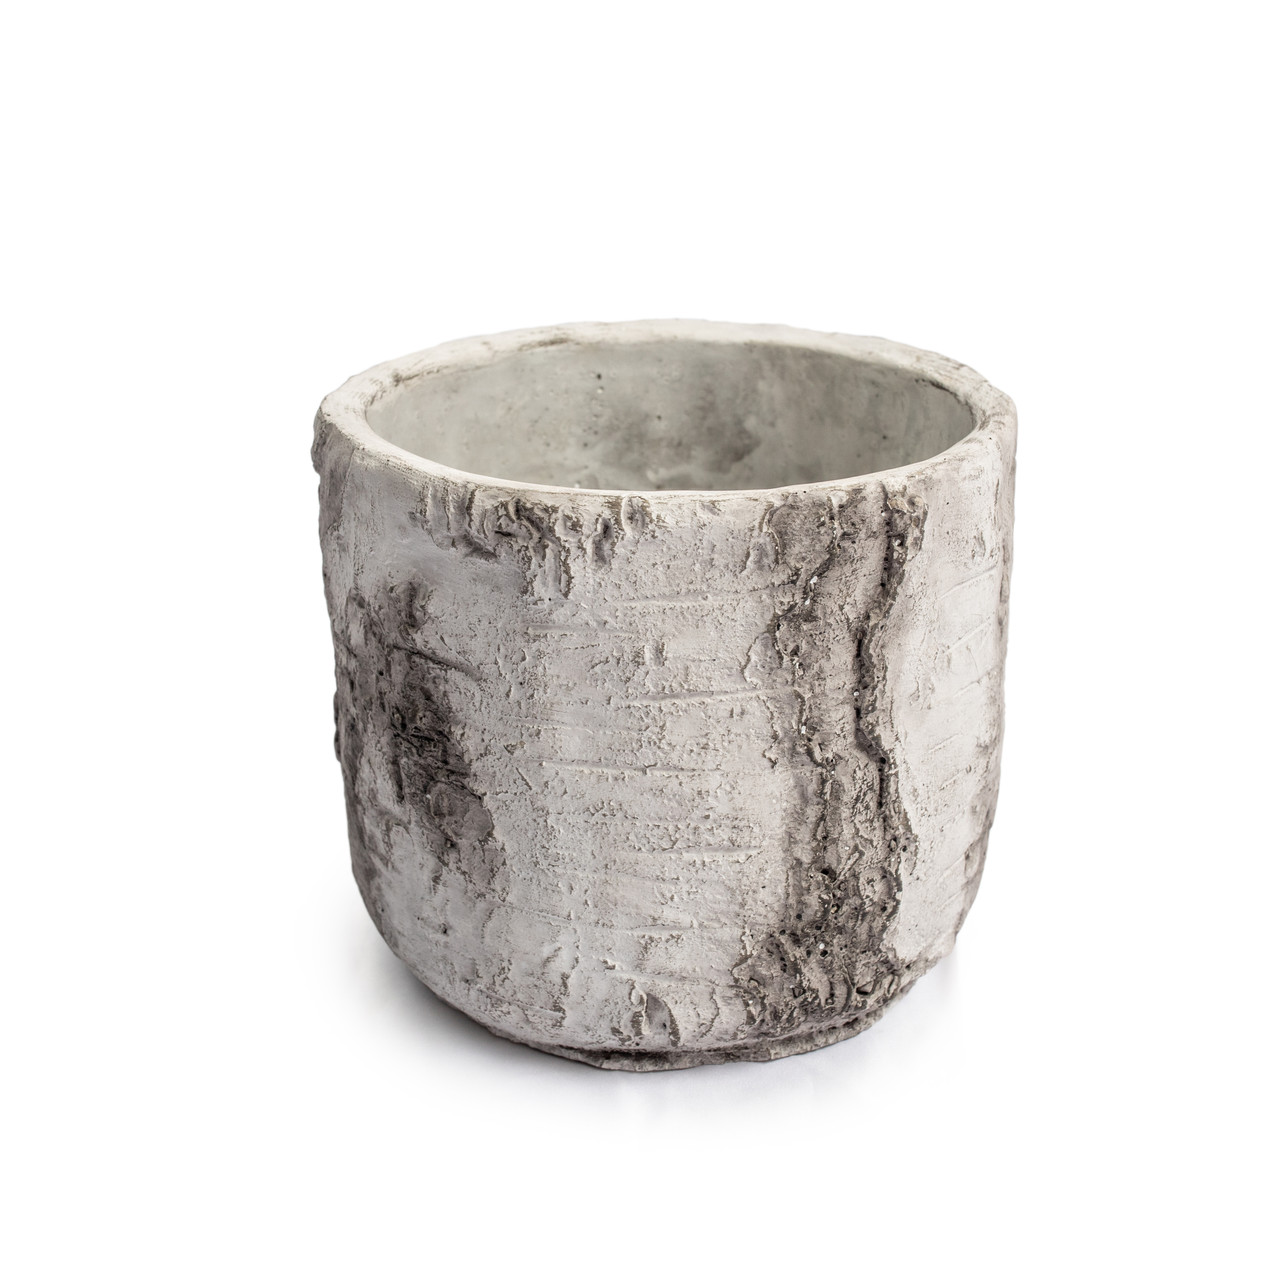 Large Cement Pot with Rounded Bottom